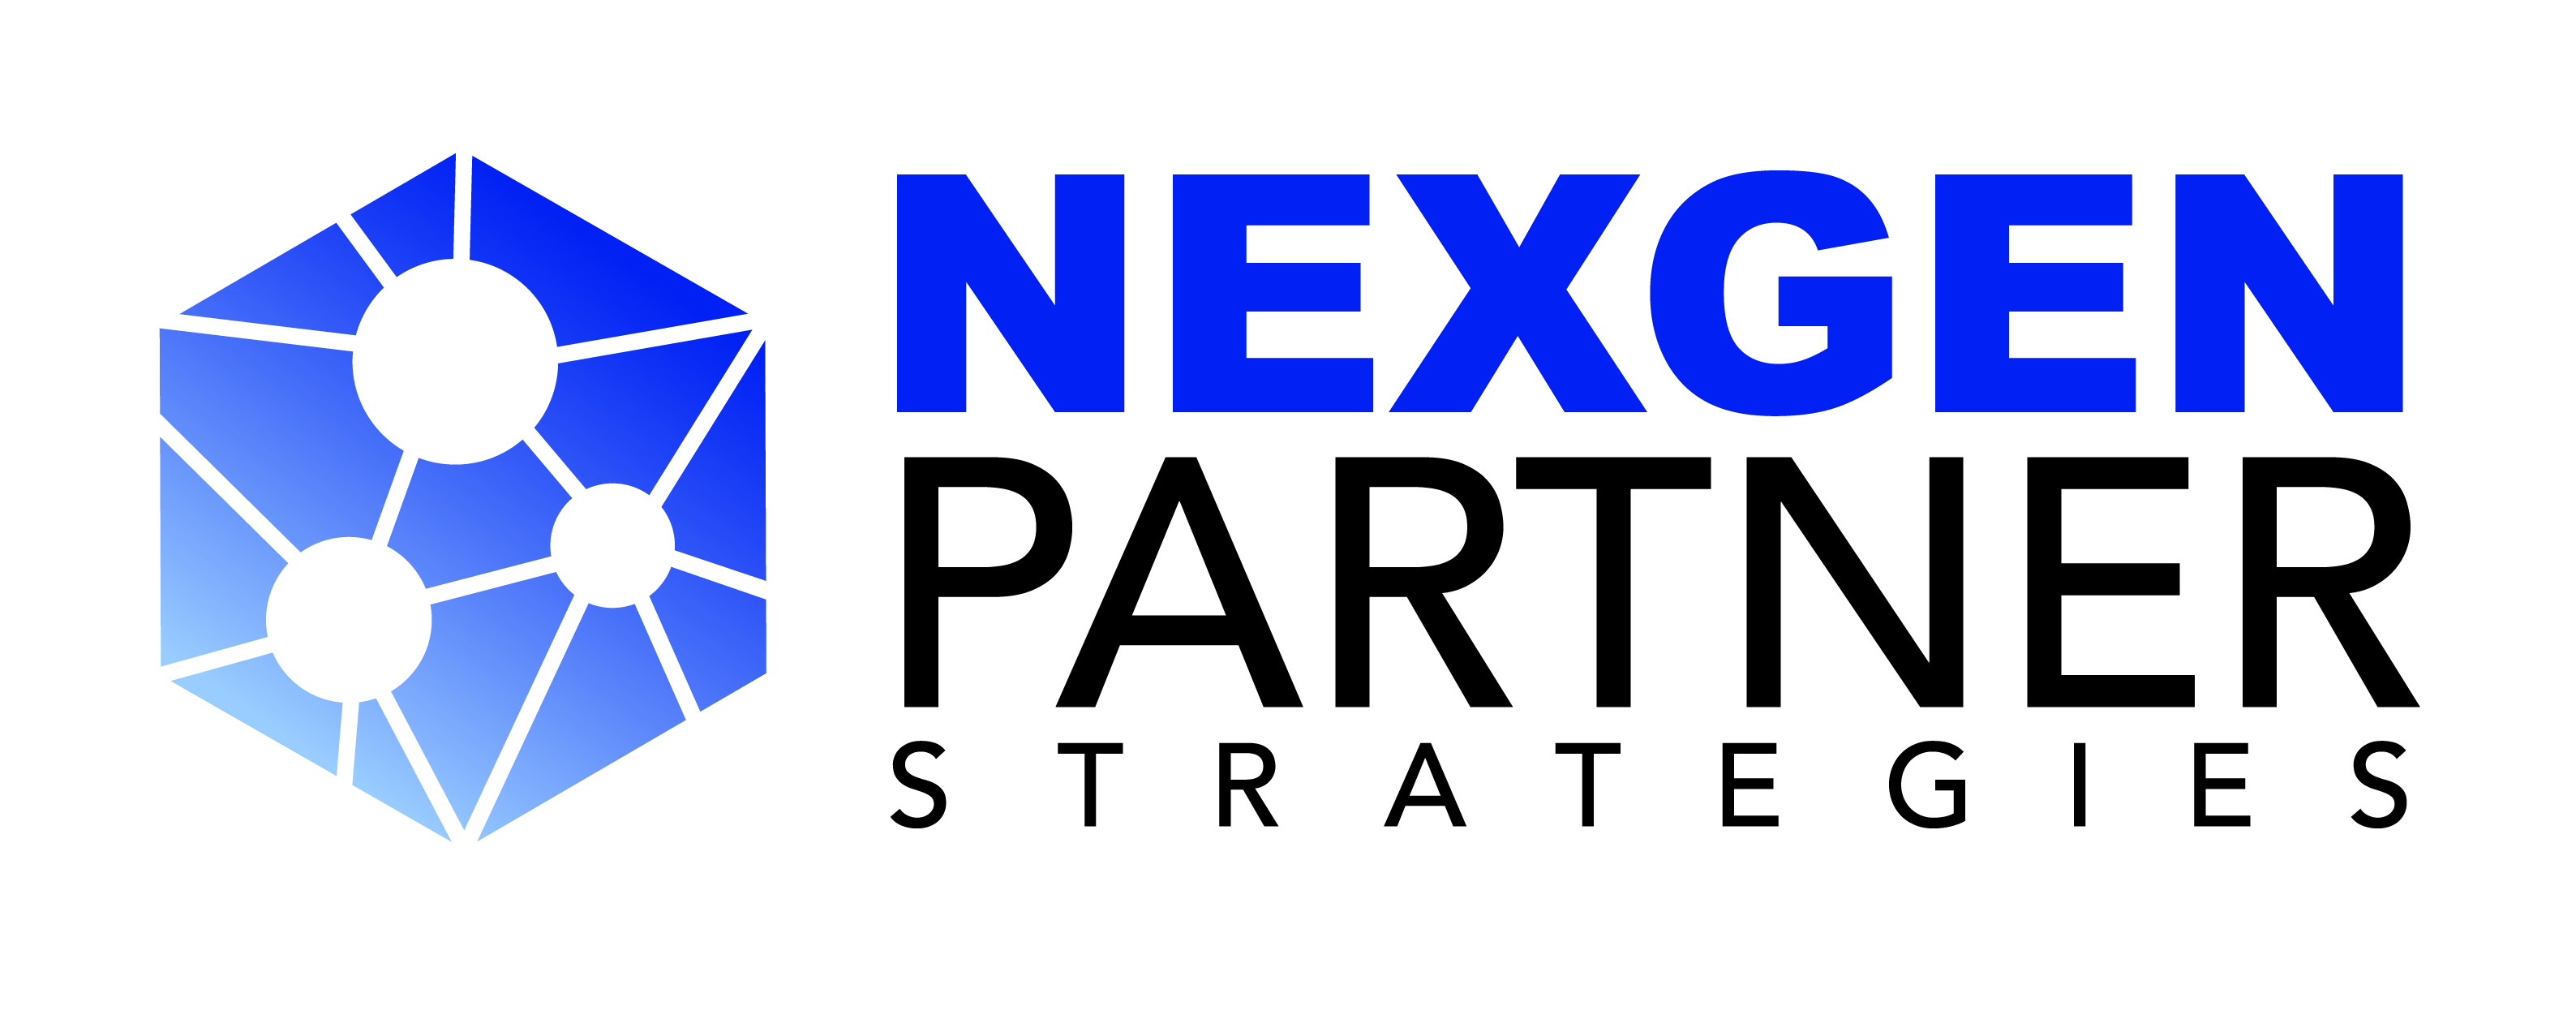 Nexgen Partner Strategies